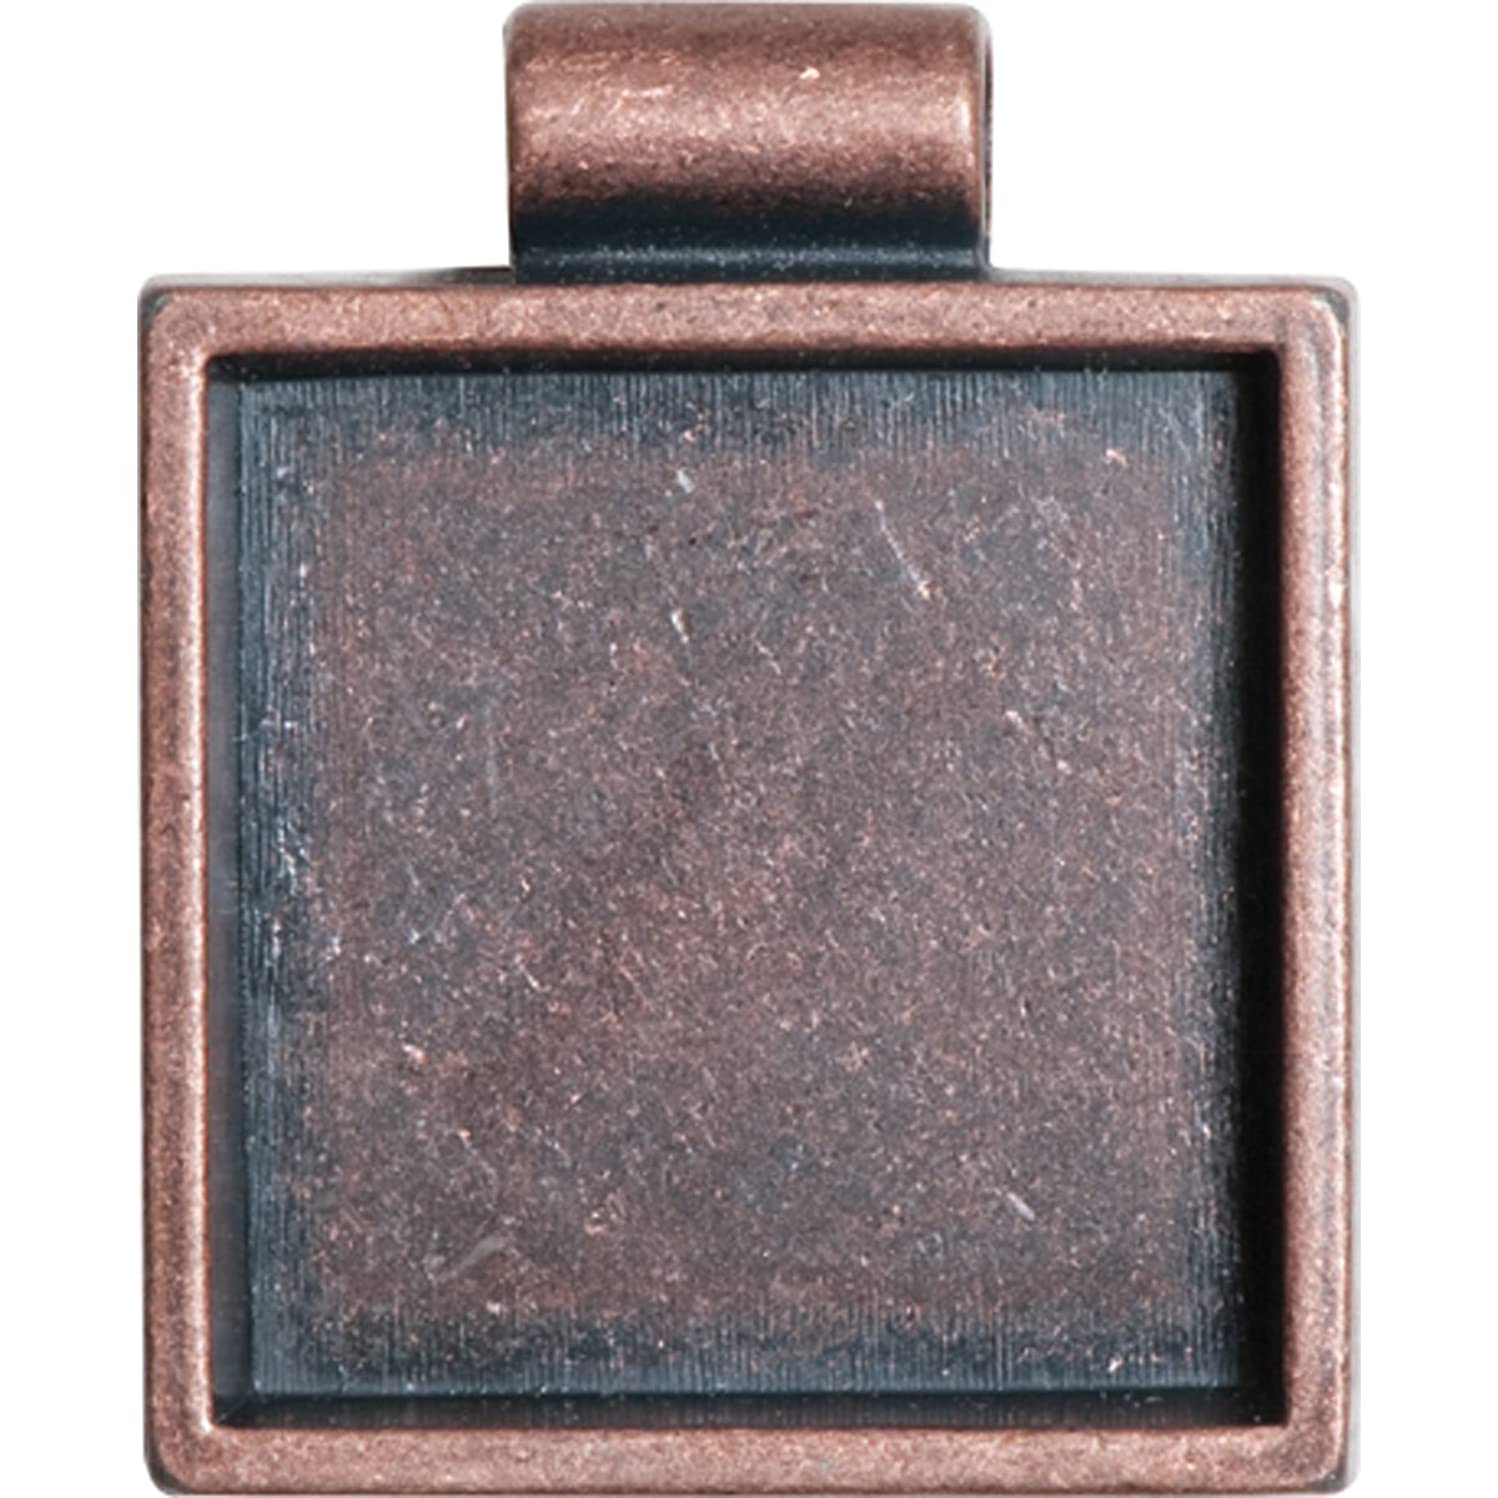 Lisa Pavelka Antique Copper Square Bezel Settings, Nickel and Lead Free, 1